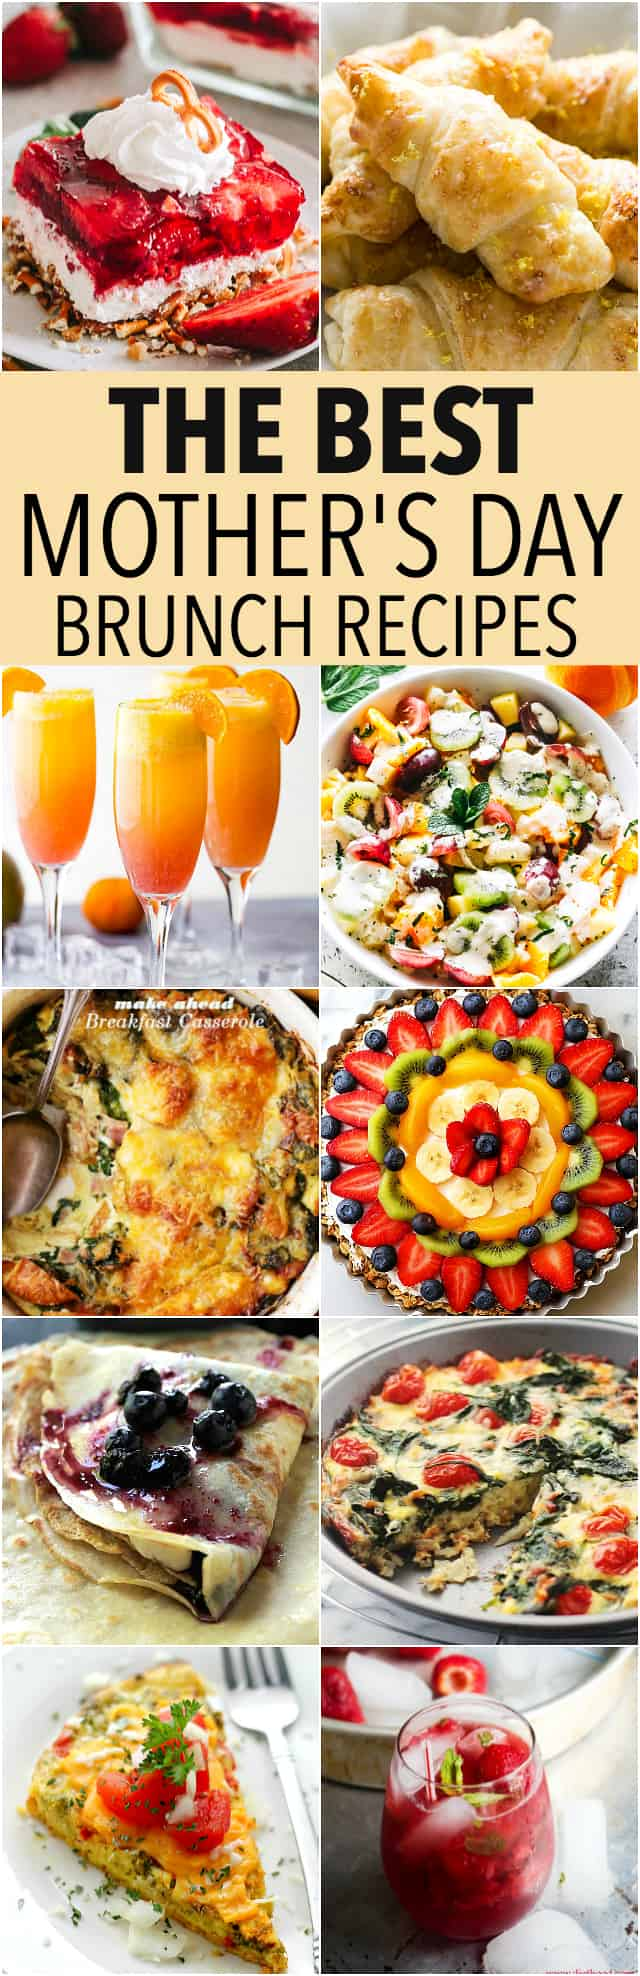 The Best Mother's Day Brunch Recipes